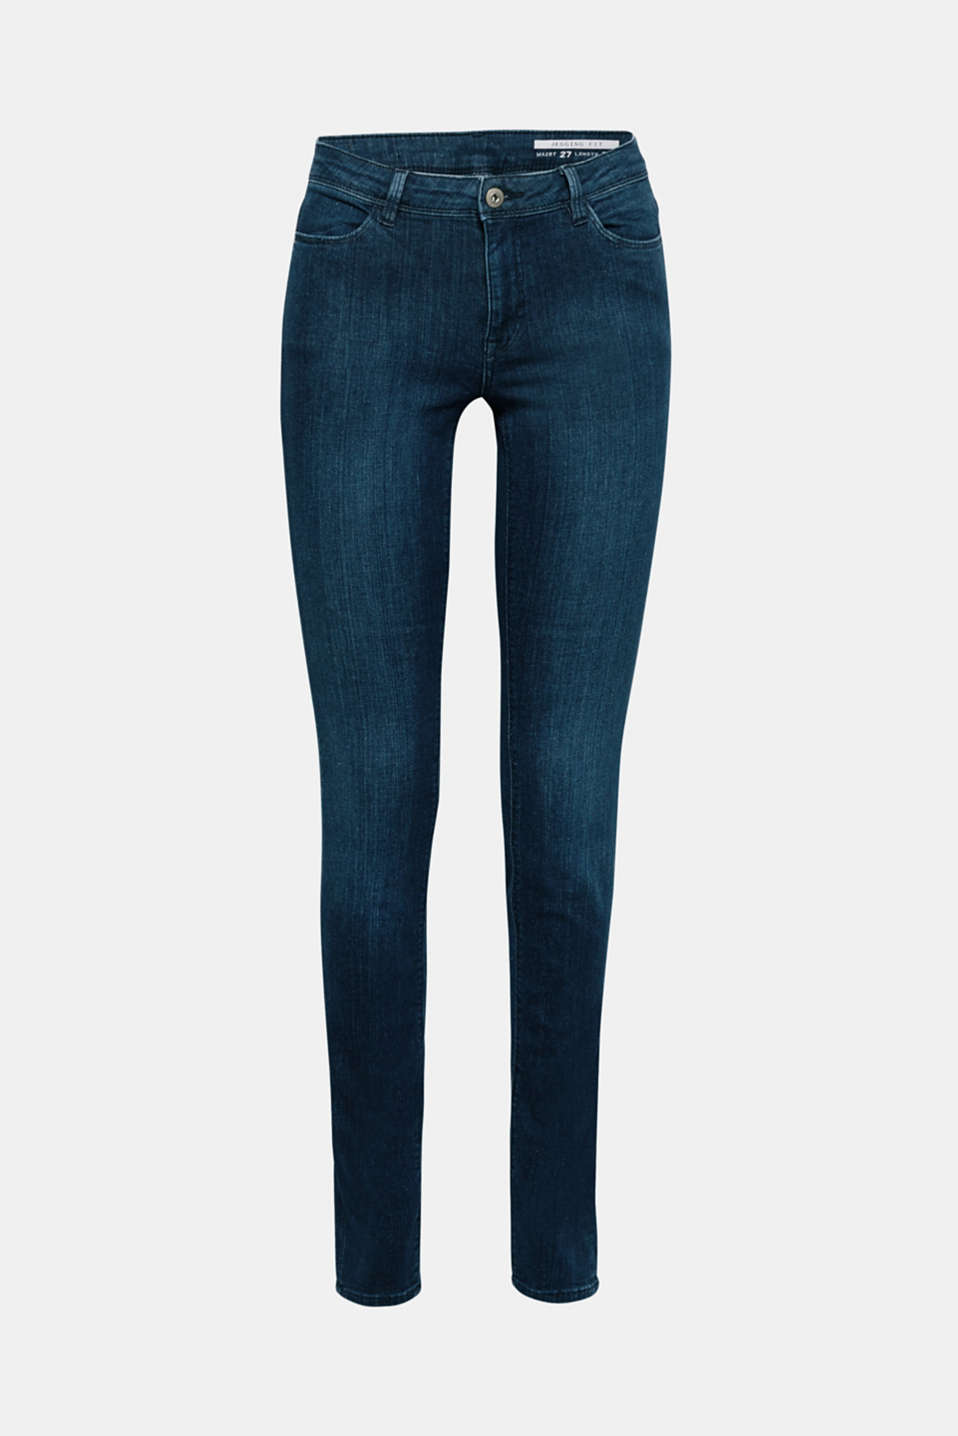 Your versatile basic jeans made with gently processed, high-quality organic cotton: These jeans in stretch denim are super comfy and create a stunning silhouette.